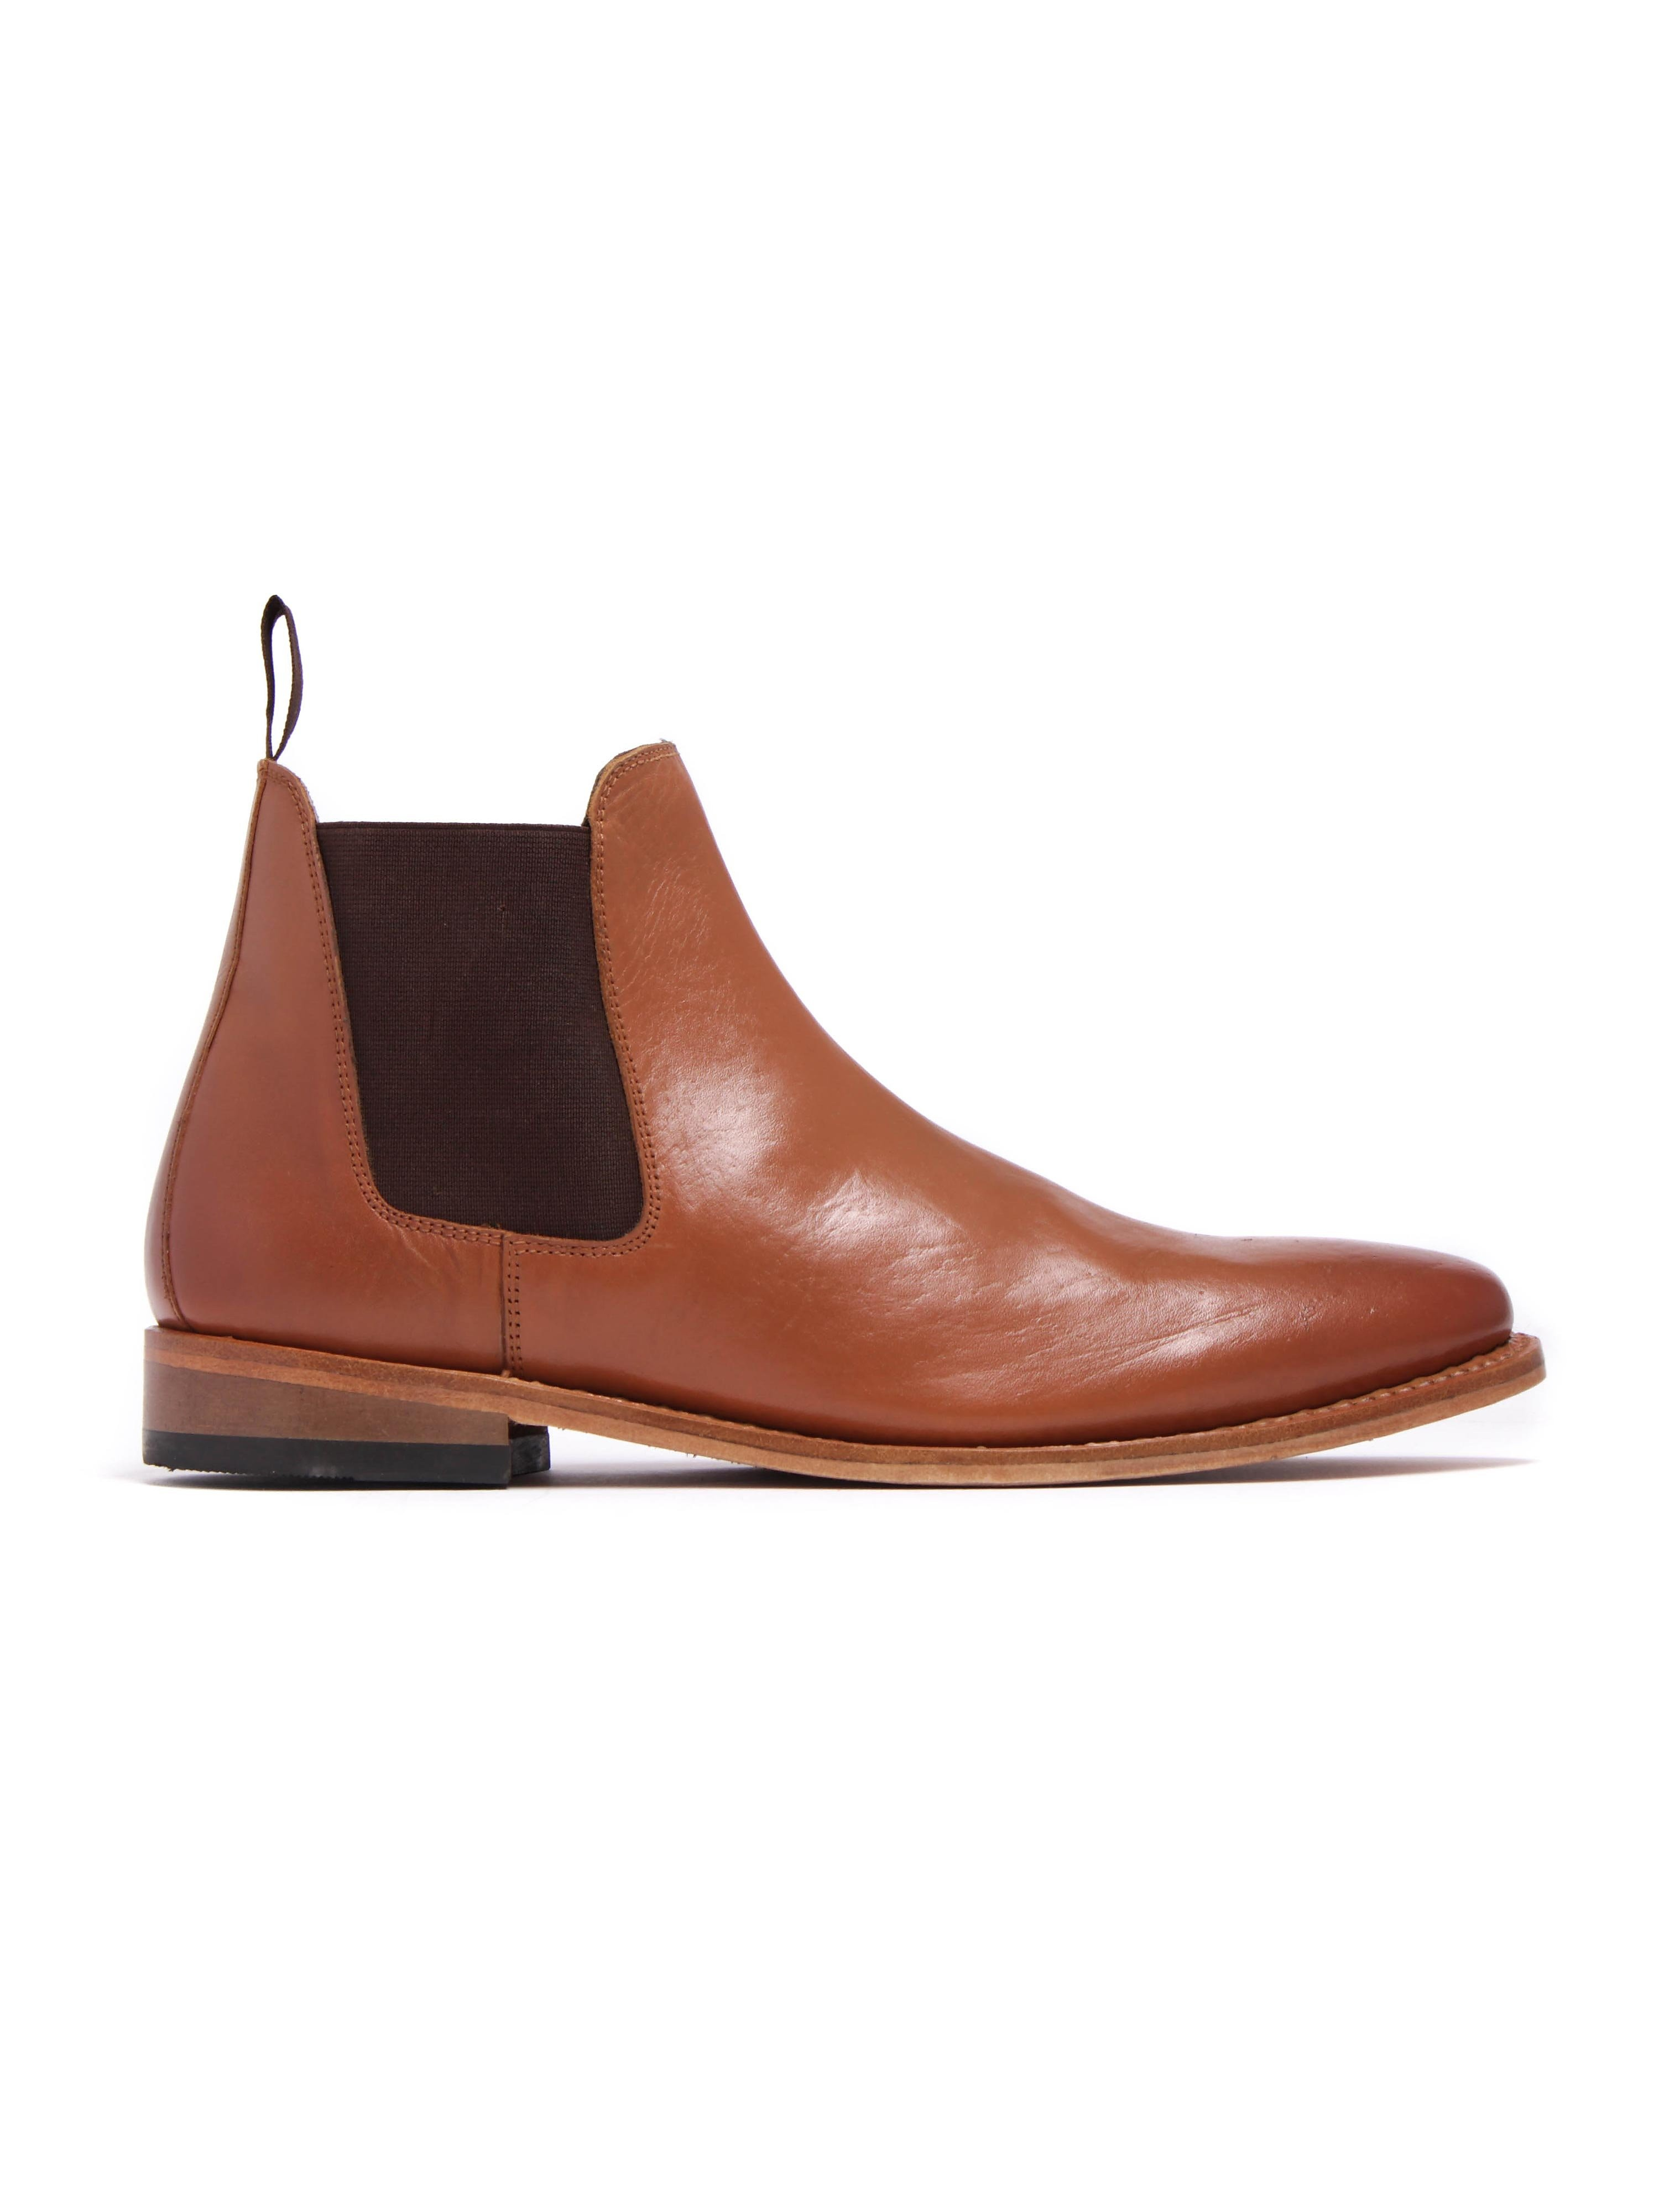 Russell Thomas Mens Tan Leather Chelsea Boots